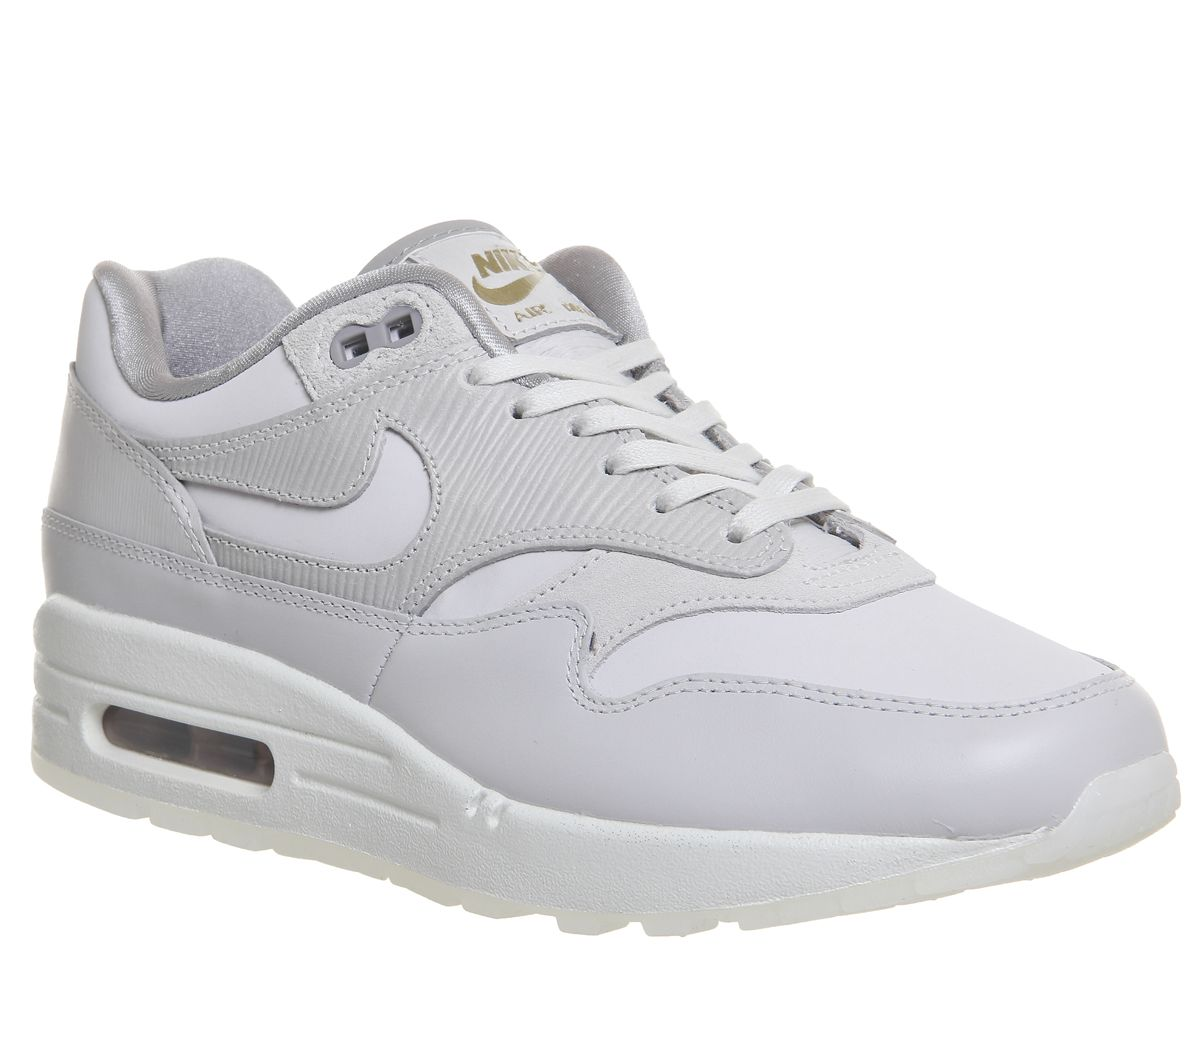 newest d7d8c 03863 Nike Air Max 1 Trainers Vast Grey Atmosphere Grey - Hers trainers